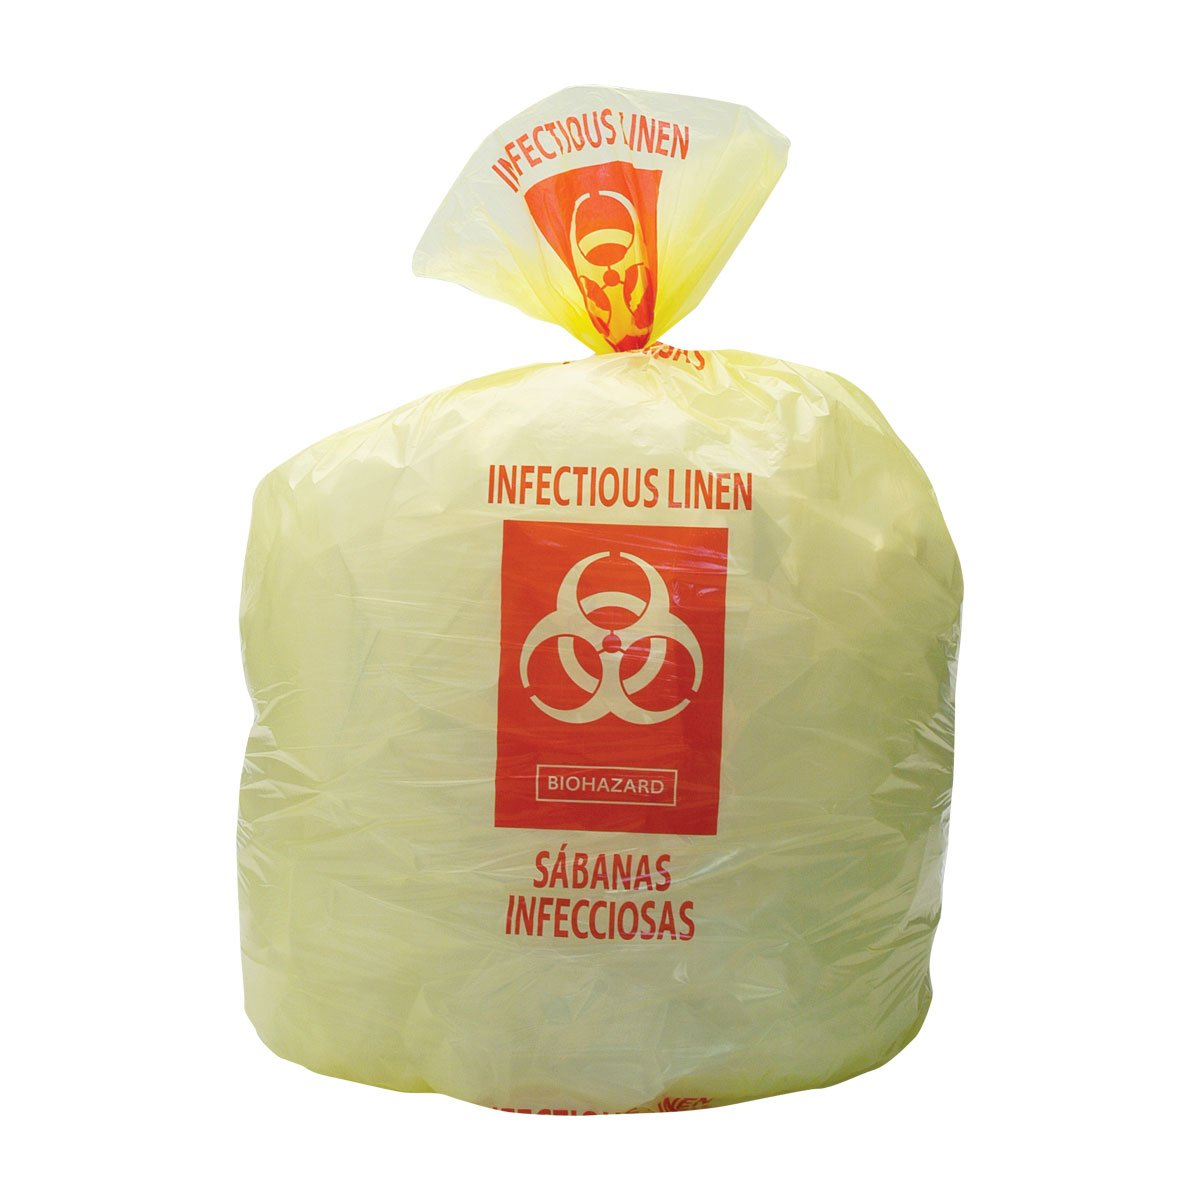 PDC Healthcare INFBG3 Yellow Plastic Hospital Bag,''Infectious Linen'', Waste Liner, Printed in English and Spanish, 33 gal (Pack of 250)